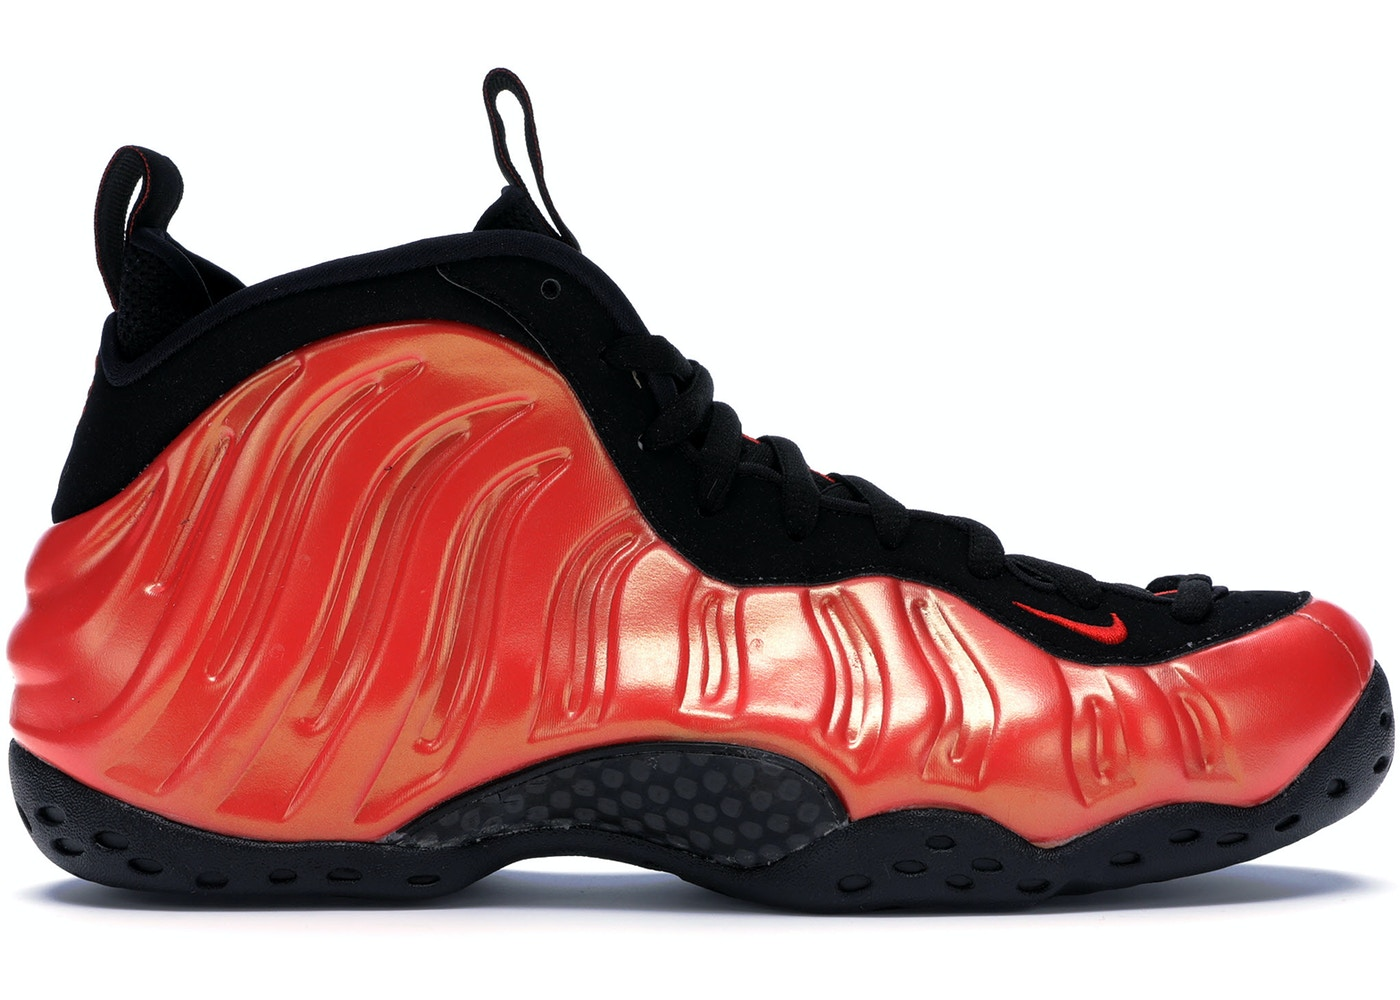 df6b948aca3 Air Foamposite One Habanero Red - 314996-603